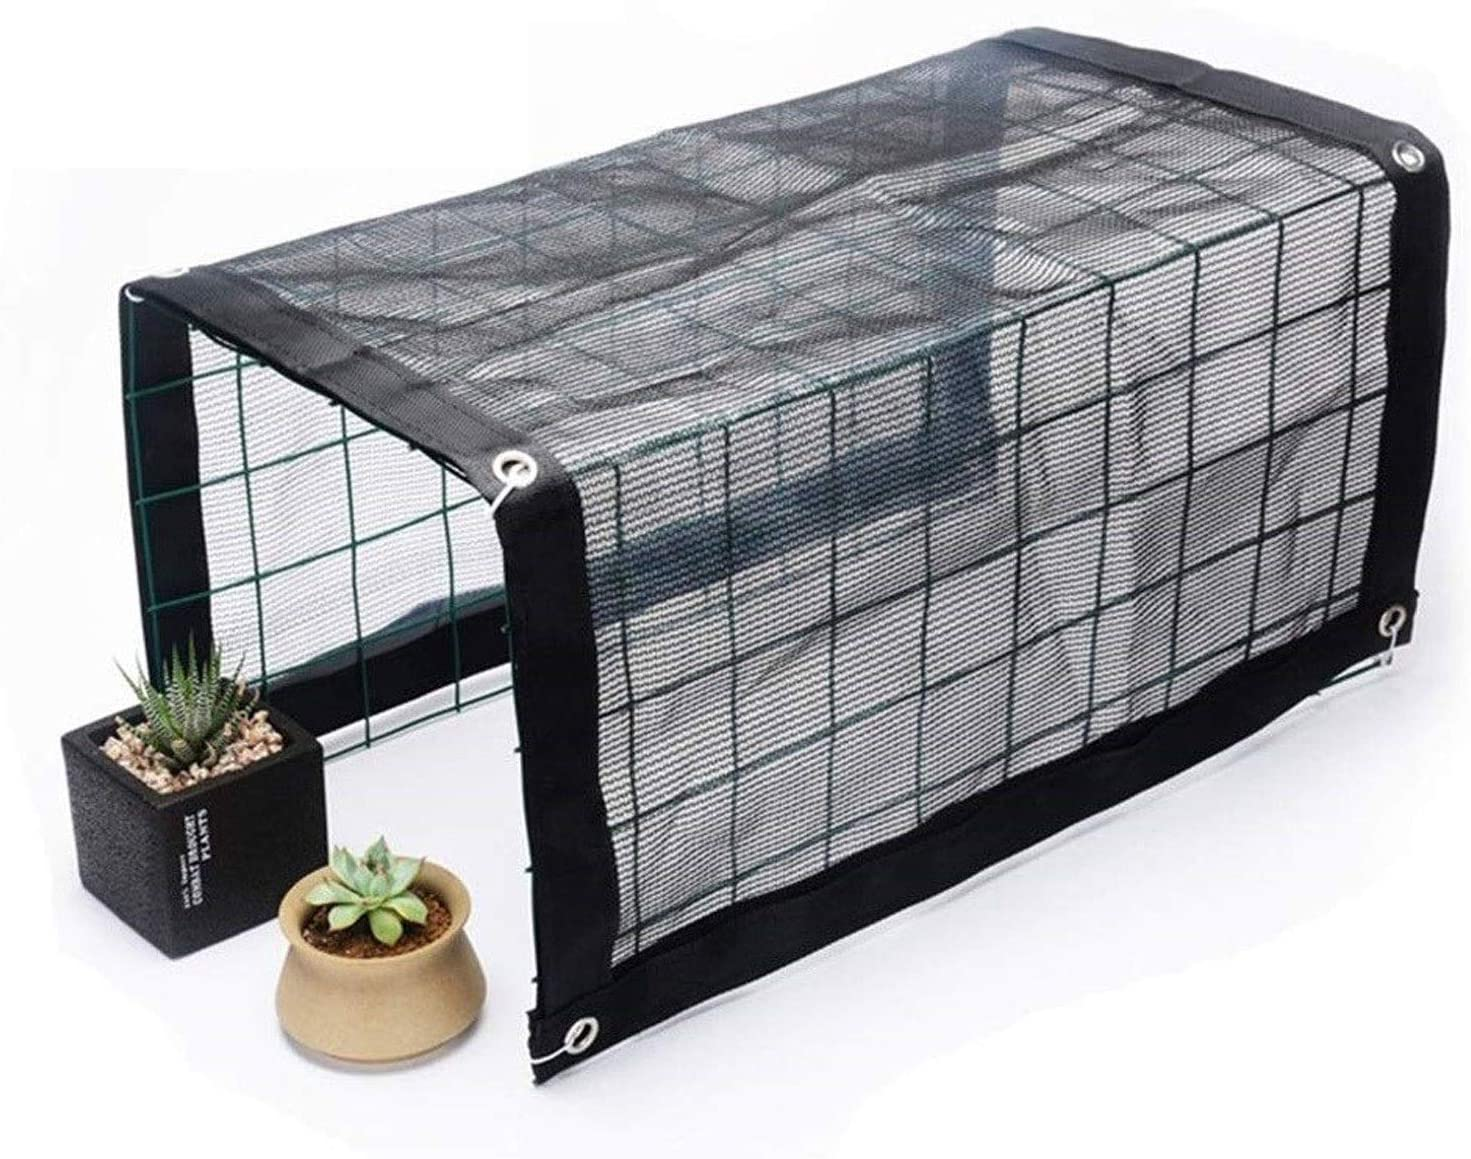 Indicators on Greenhouse Cloth You Should Know